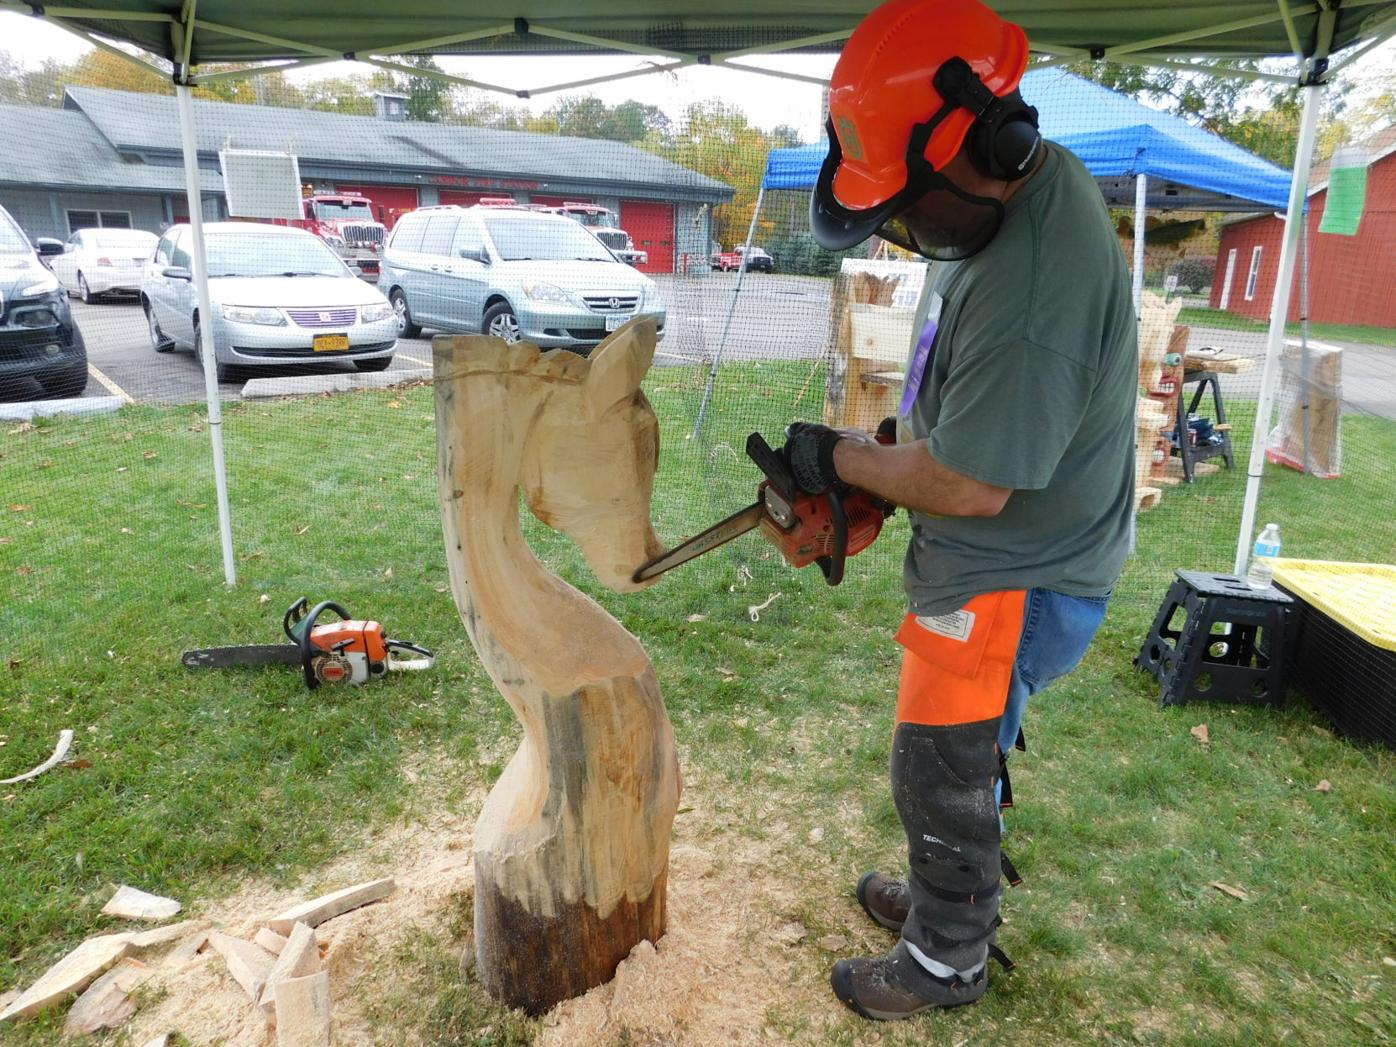 David Westgate uses a special chain saw designed for woodworking to carve a horse head at the Woodcarvers' Show